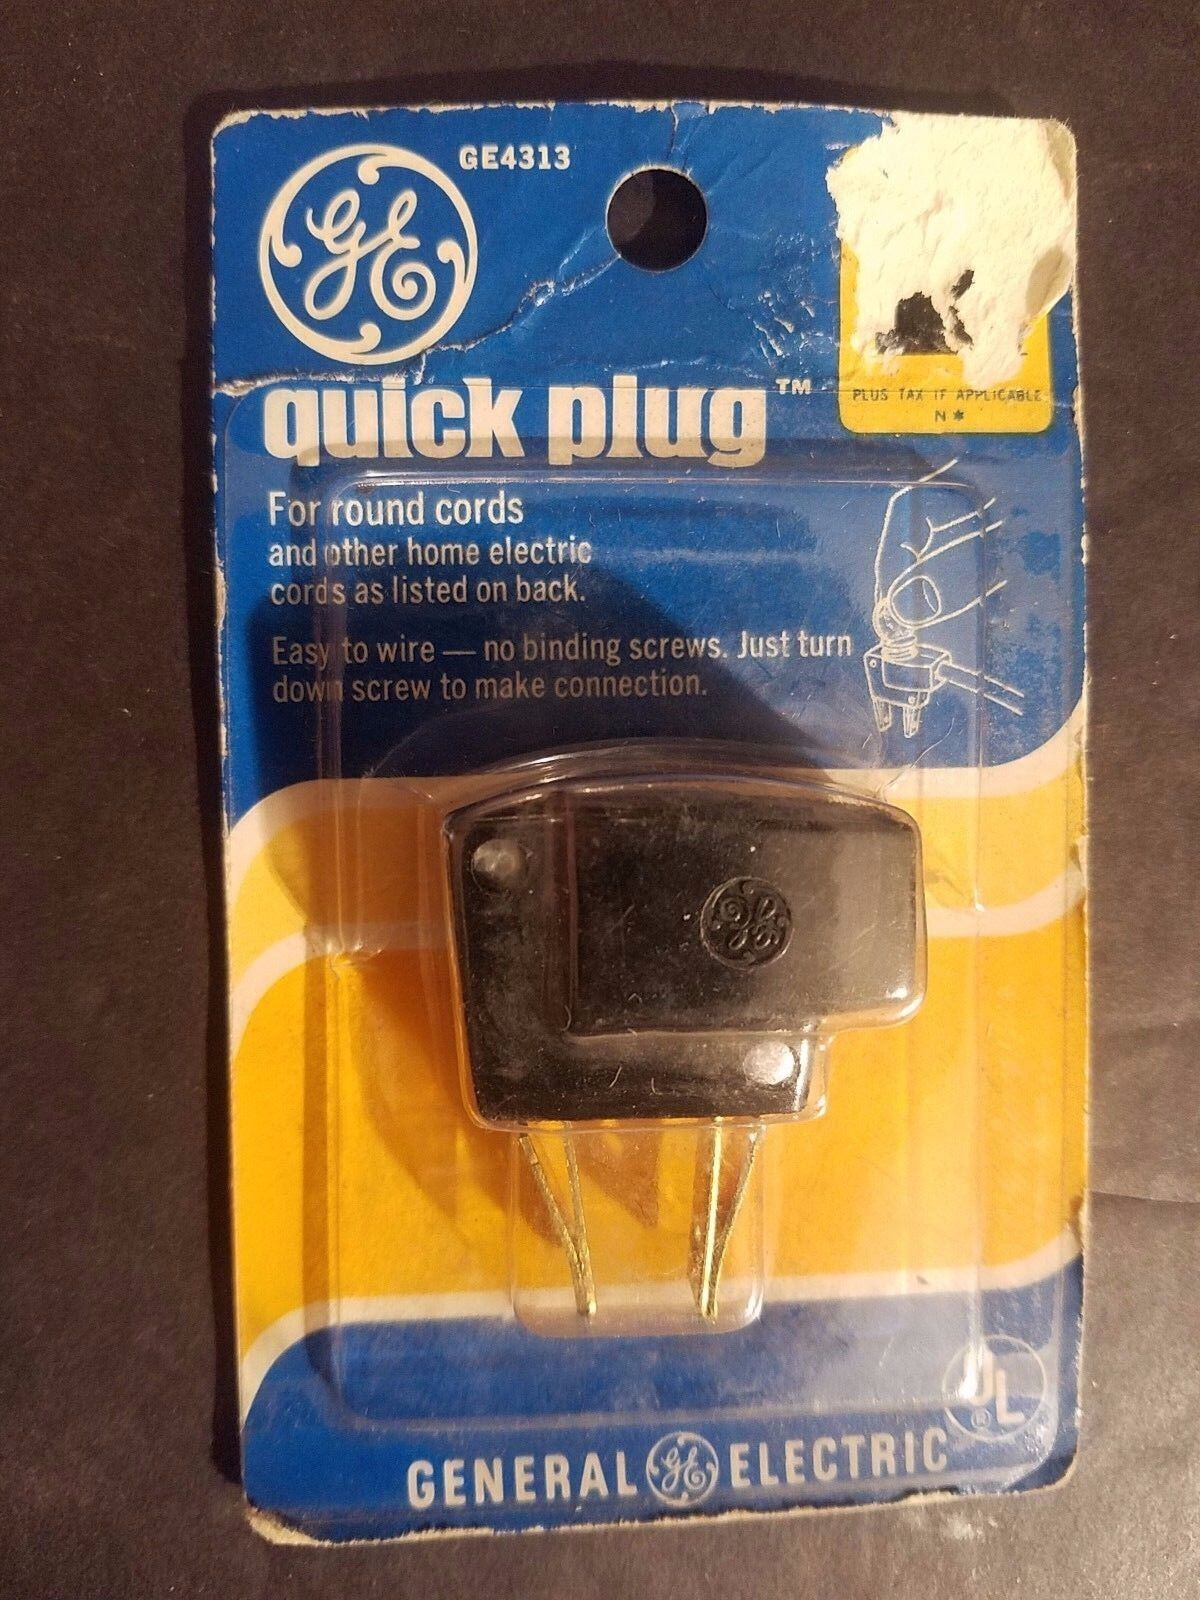 NEW SEALED Vintage GE Quick Plug GE4313 For Round Cords Brown Male